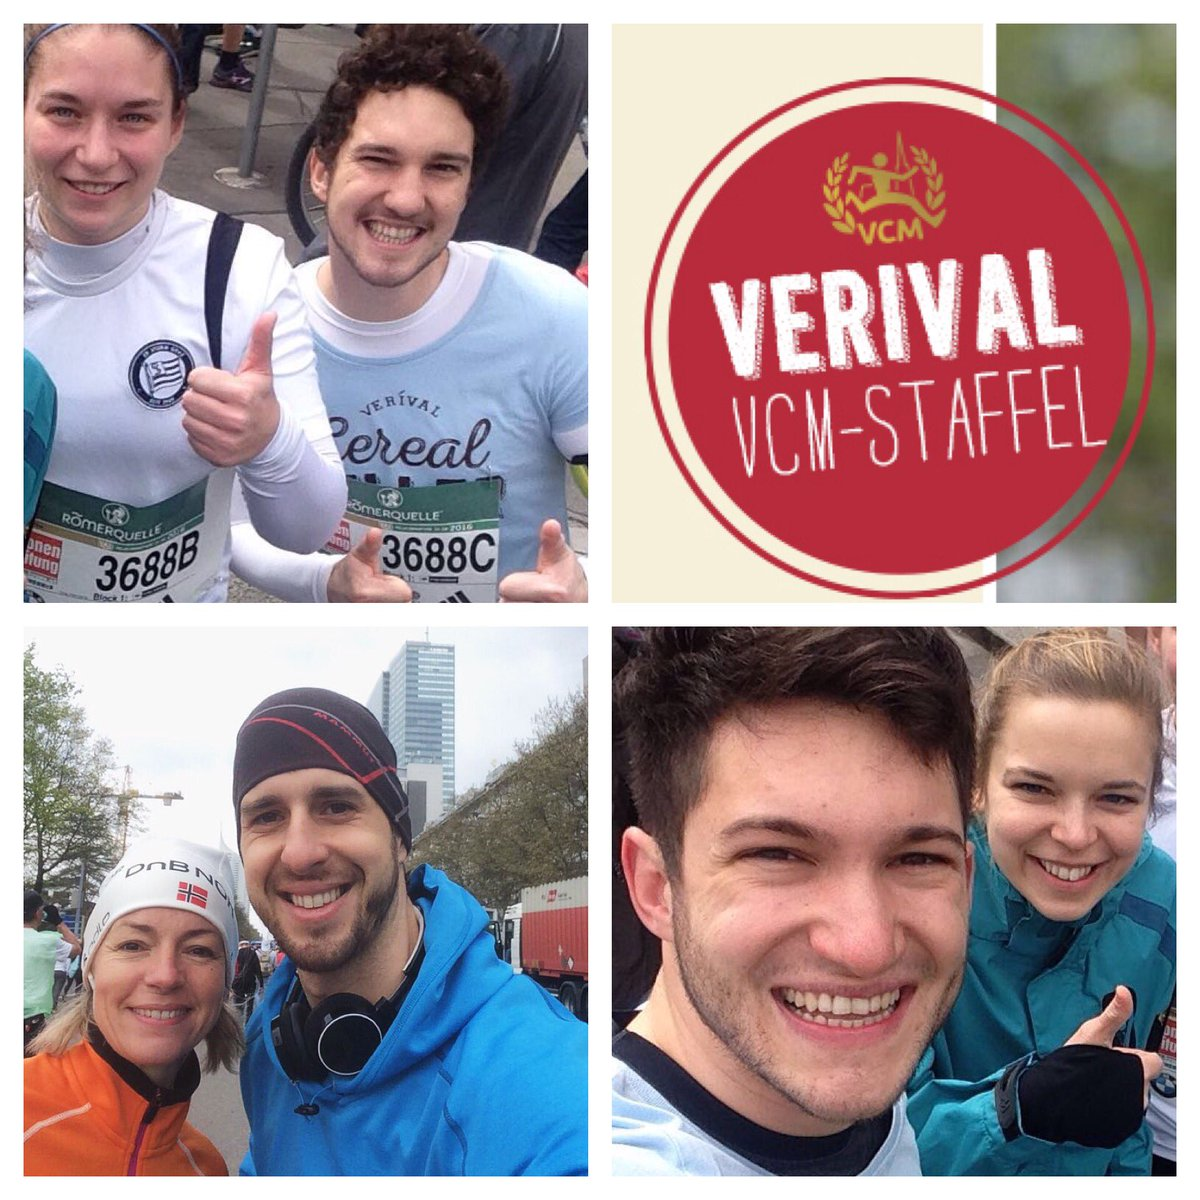 Don't mess with us, we're cereal! Bei den Cereal Killers von #Verival läuft's prima #vcm16. https://t.co/YlkydsHprS